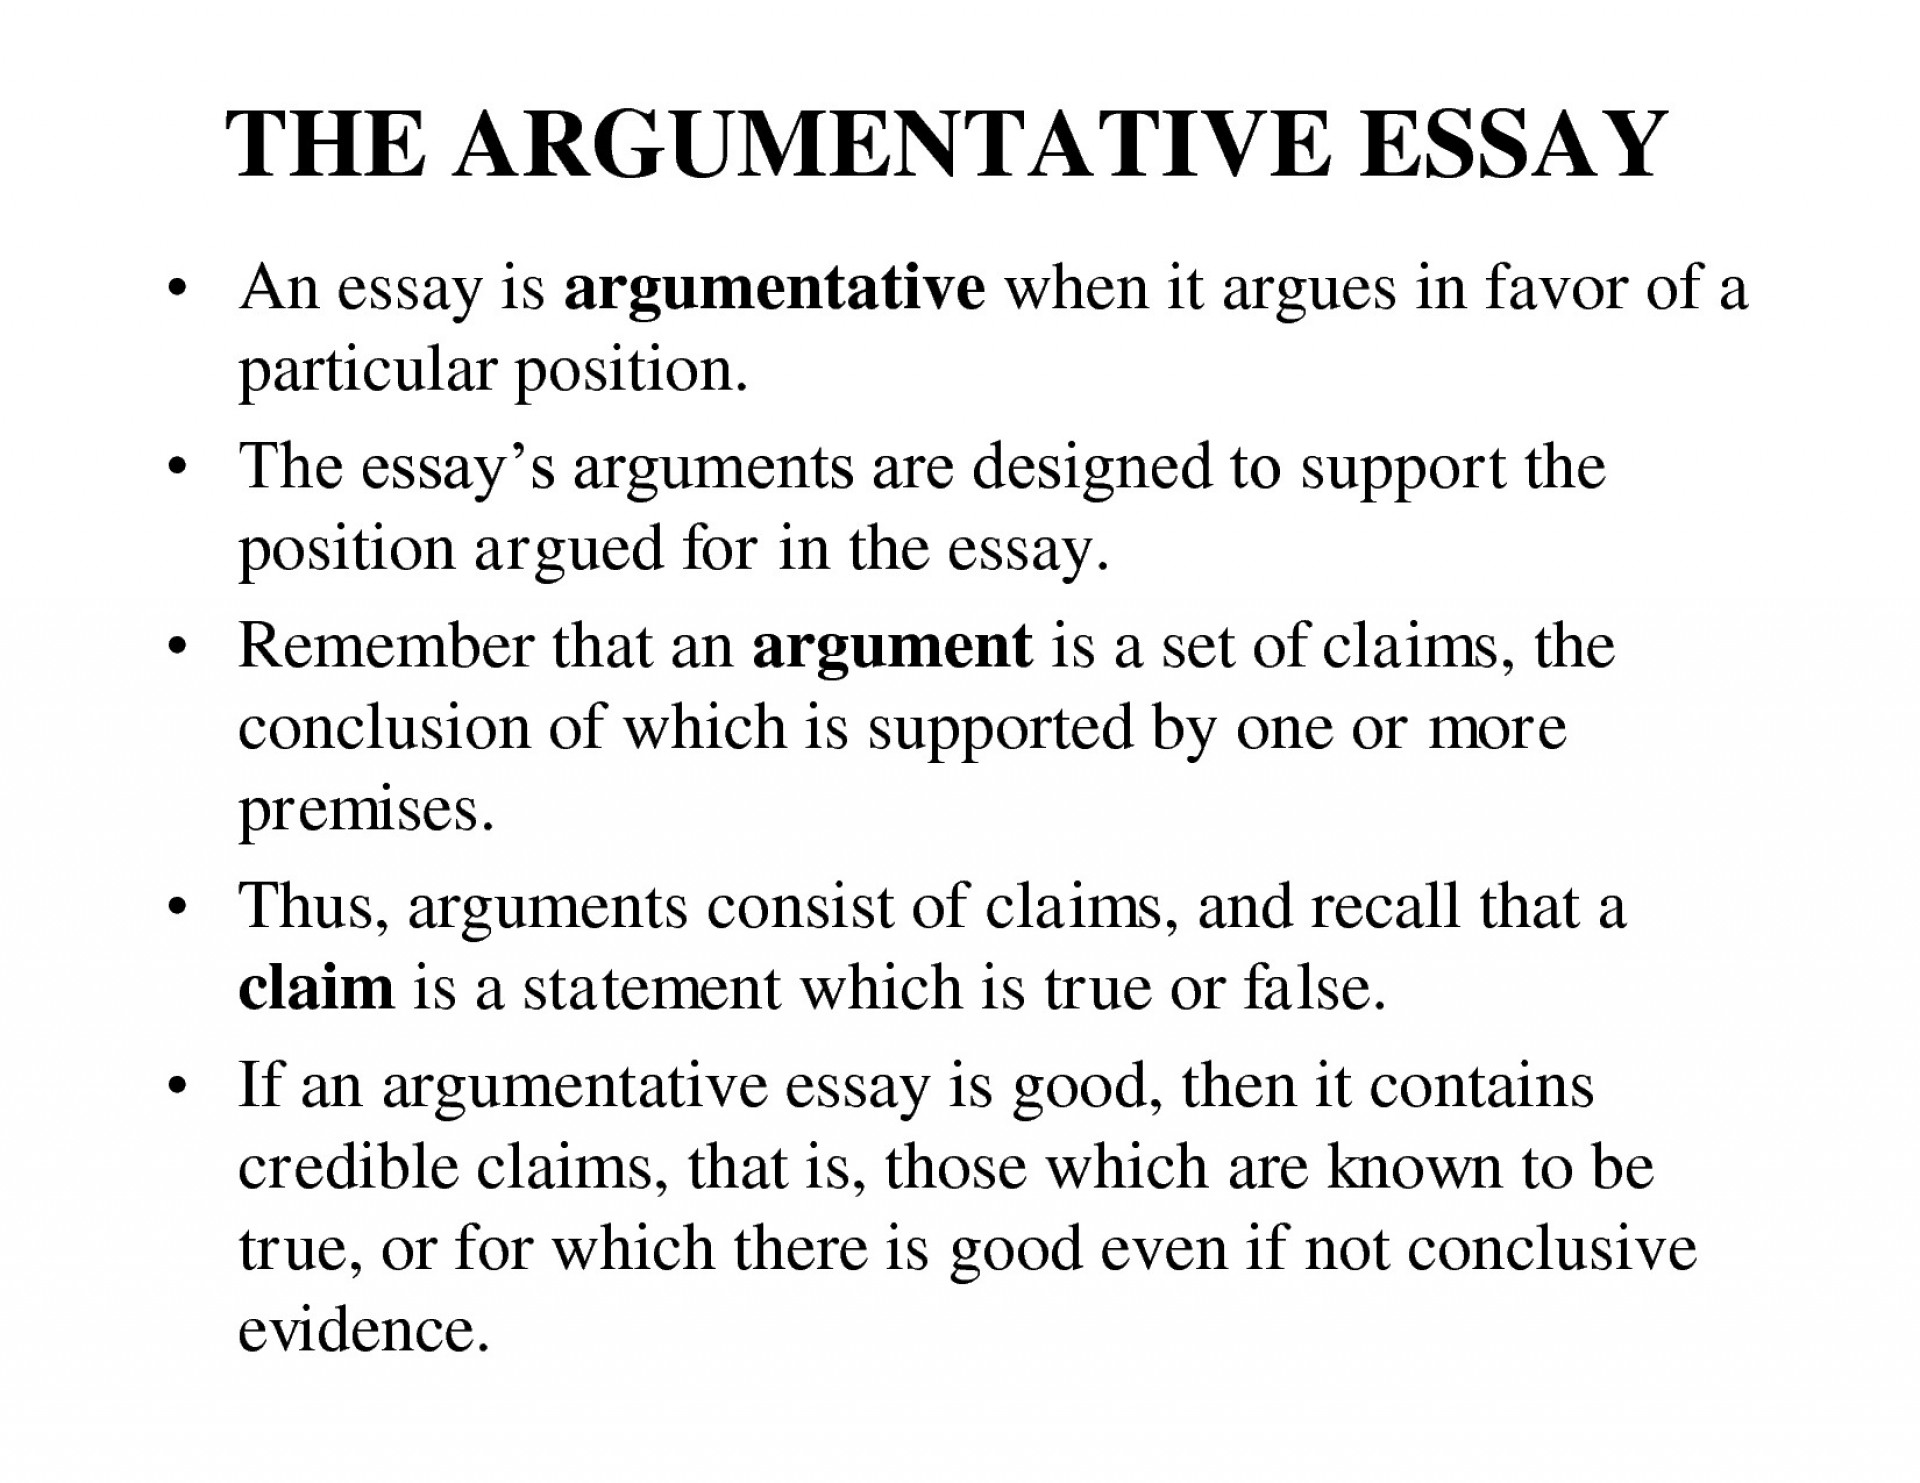 001 How To Write Conclusion For An Argumentative Research Paper Essay Conclusions Another Word Throughout Excellent A 1920